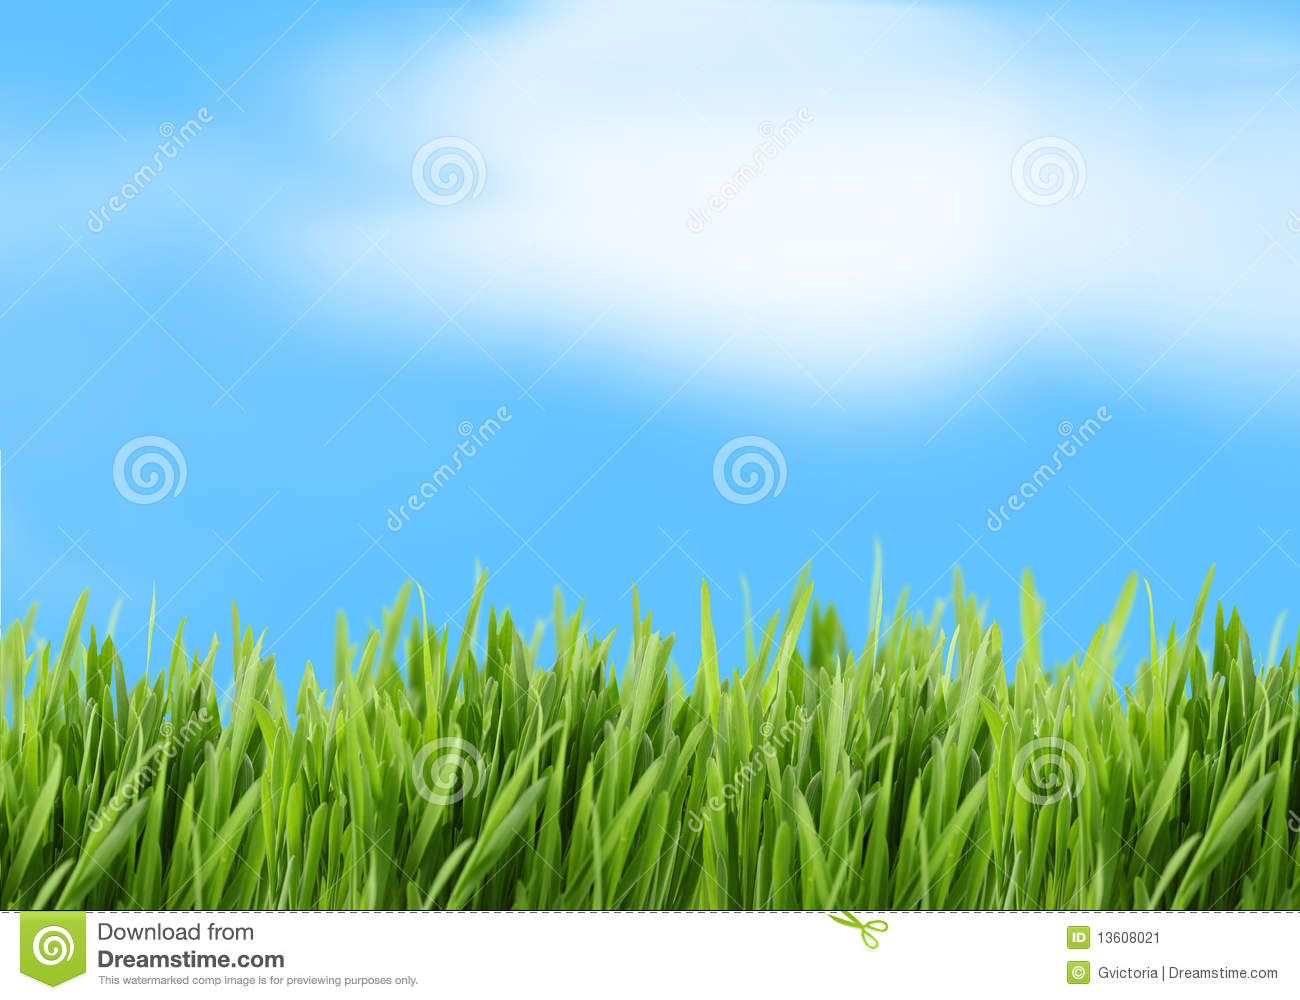 Green Grass And Blue Sky Background Stock Image - Image ...